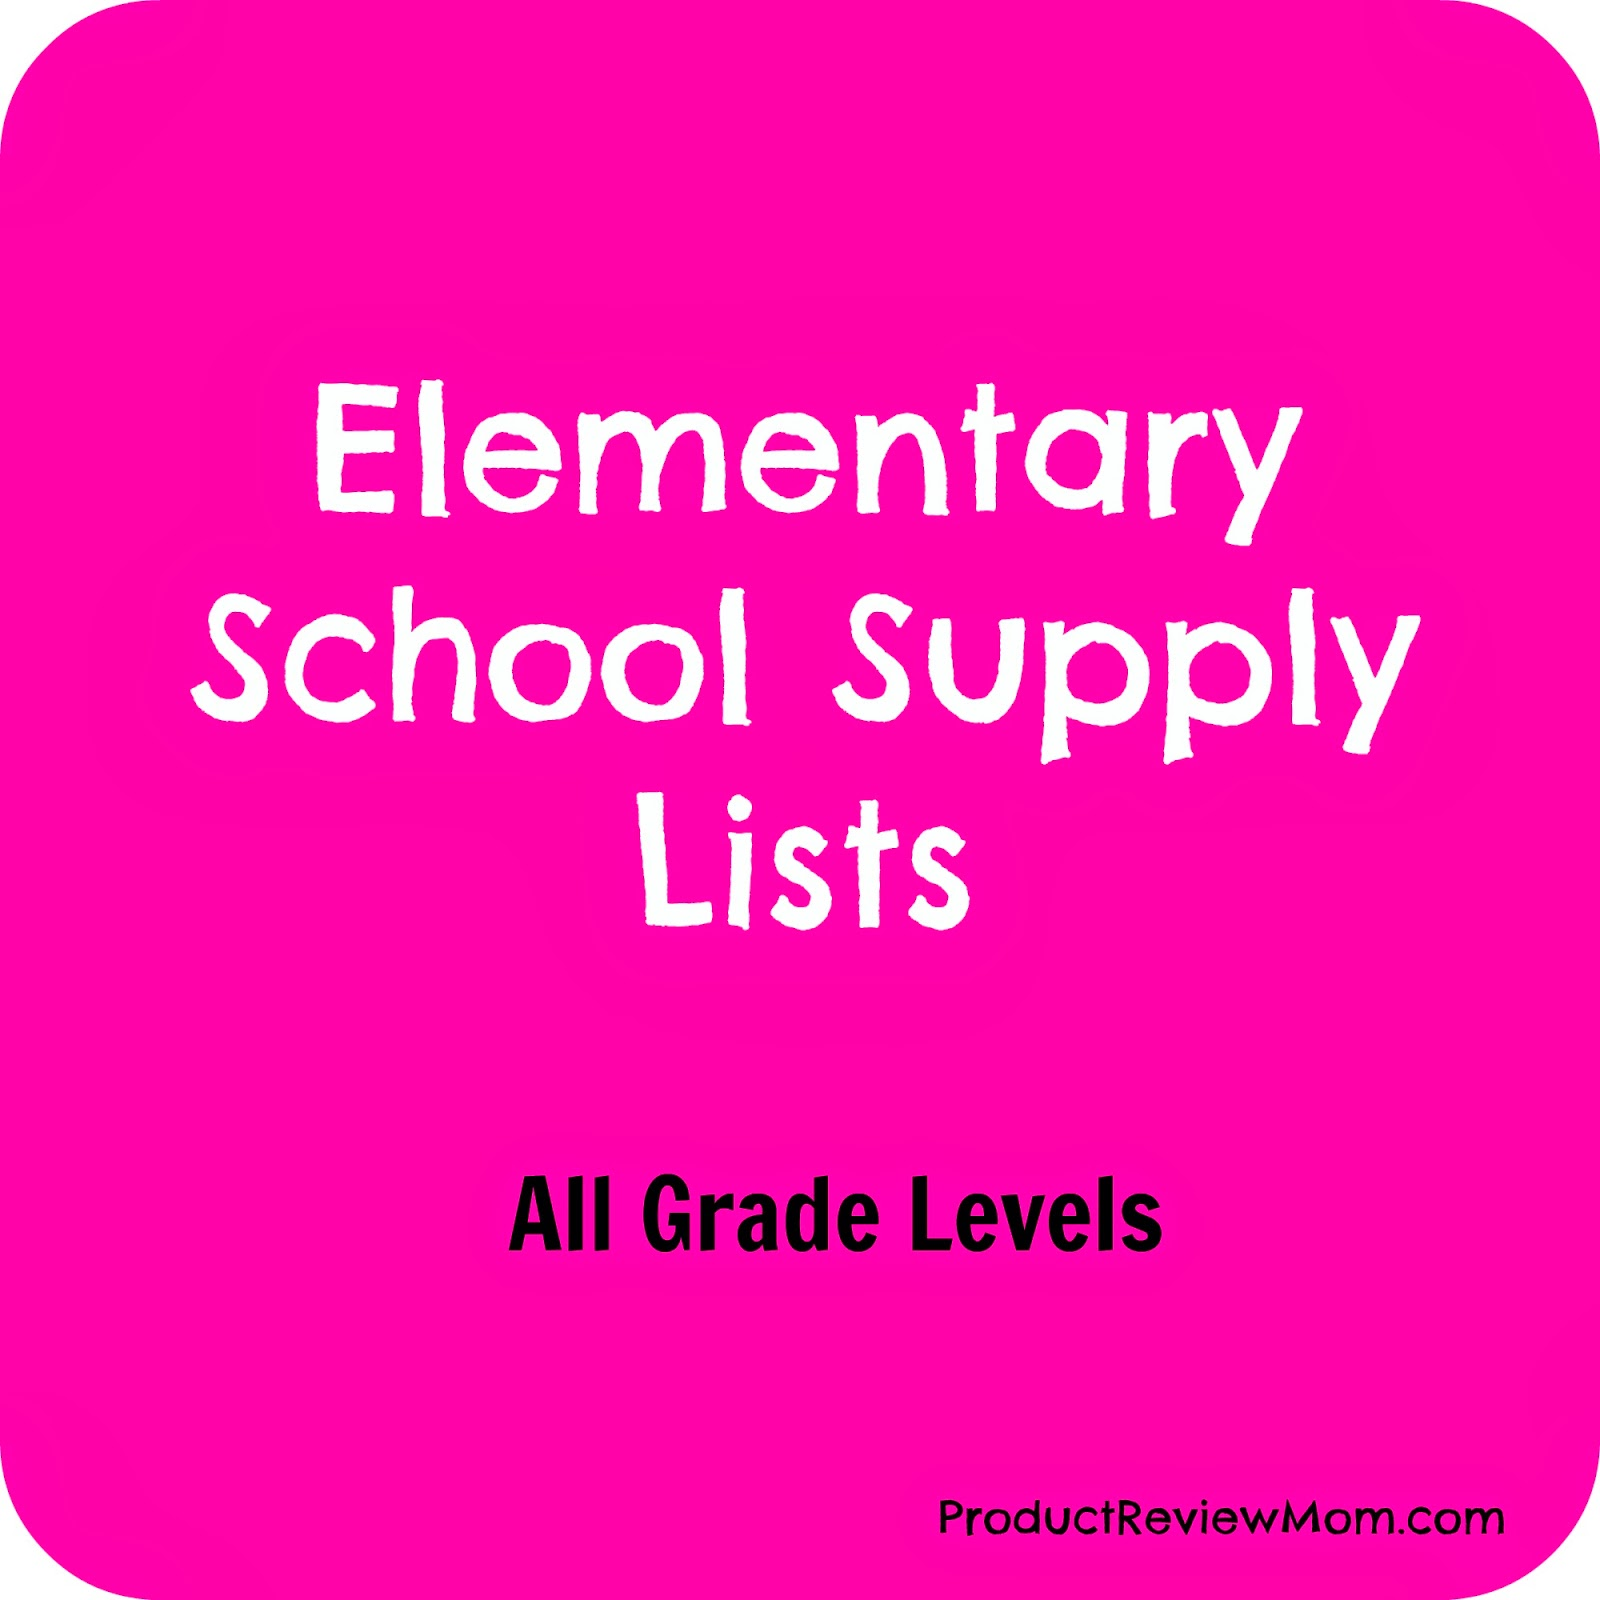 Elementary School Supply Lists for All Grade Levels #BacktoSchool #BacktoSchoolSupplies via ProductReviewMom.com